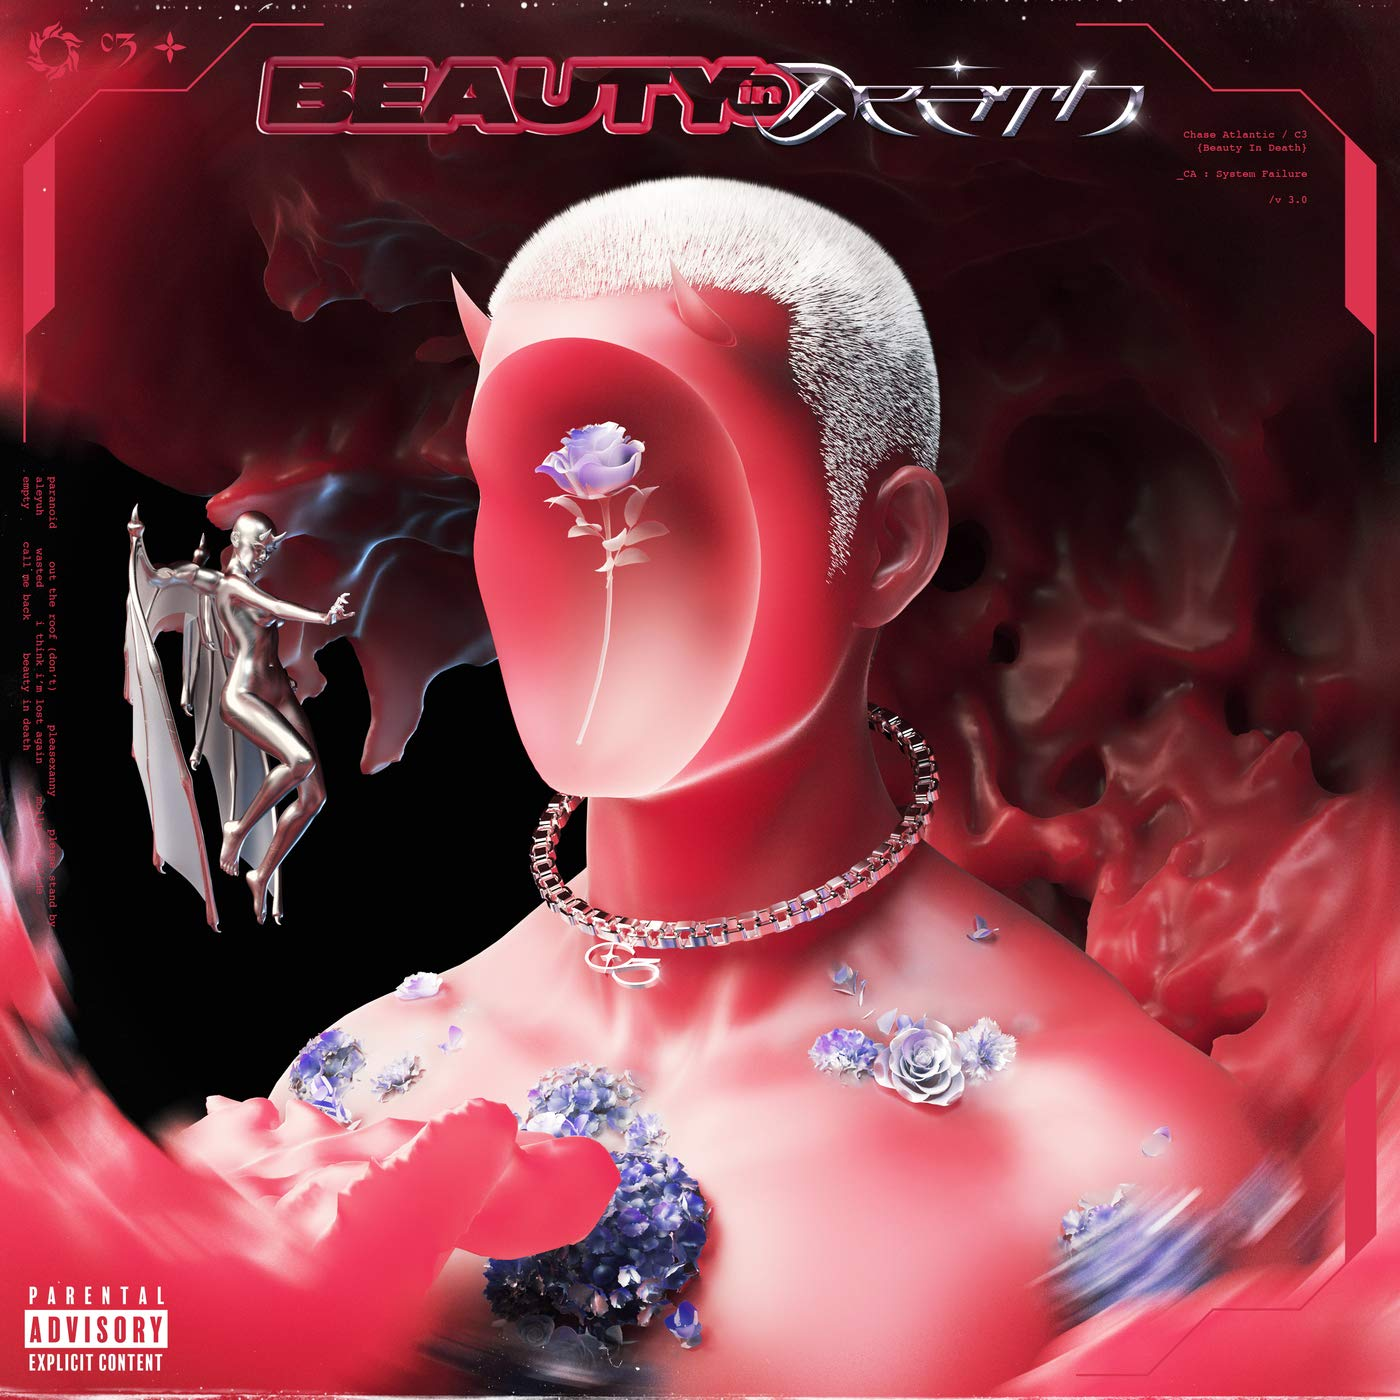 Chase Atlantic Beauty In Death